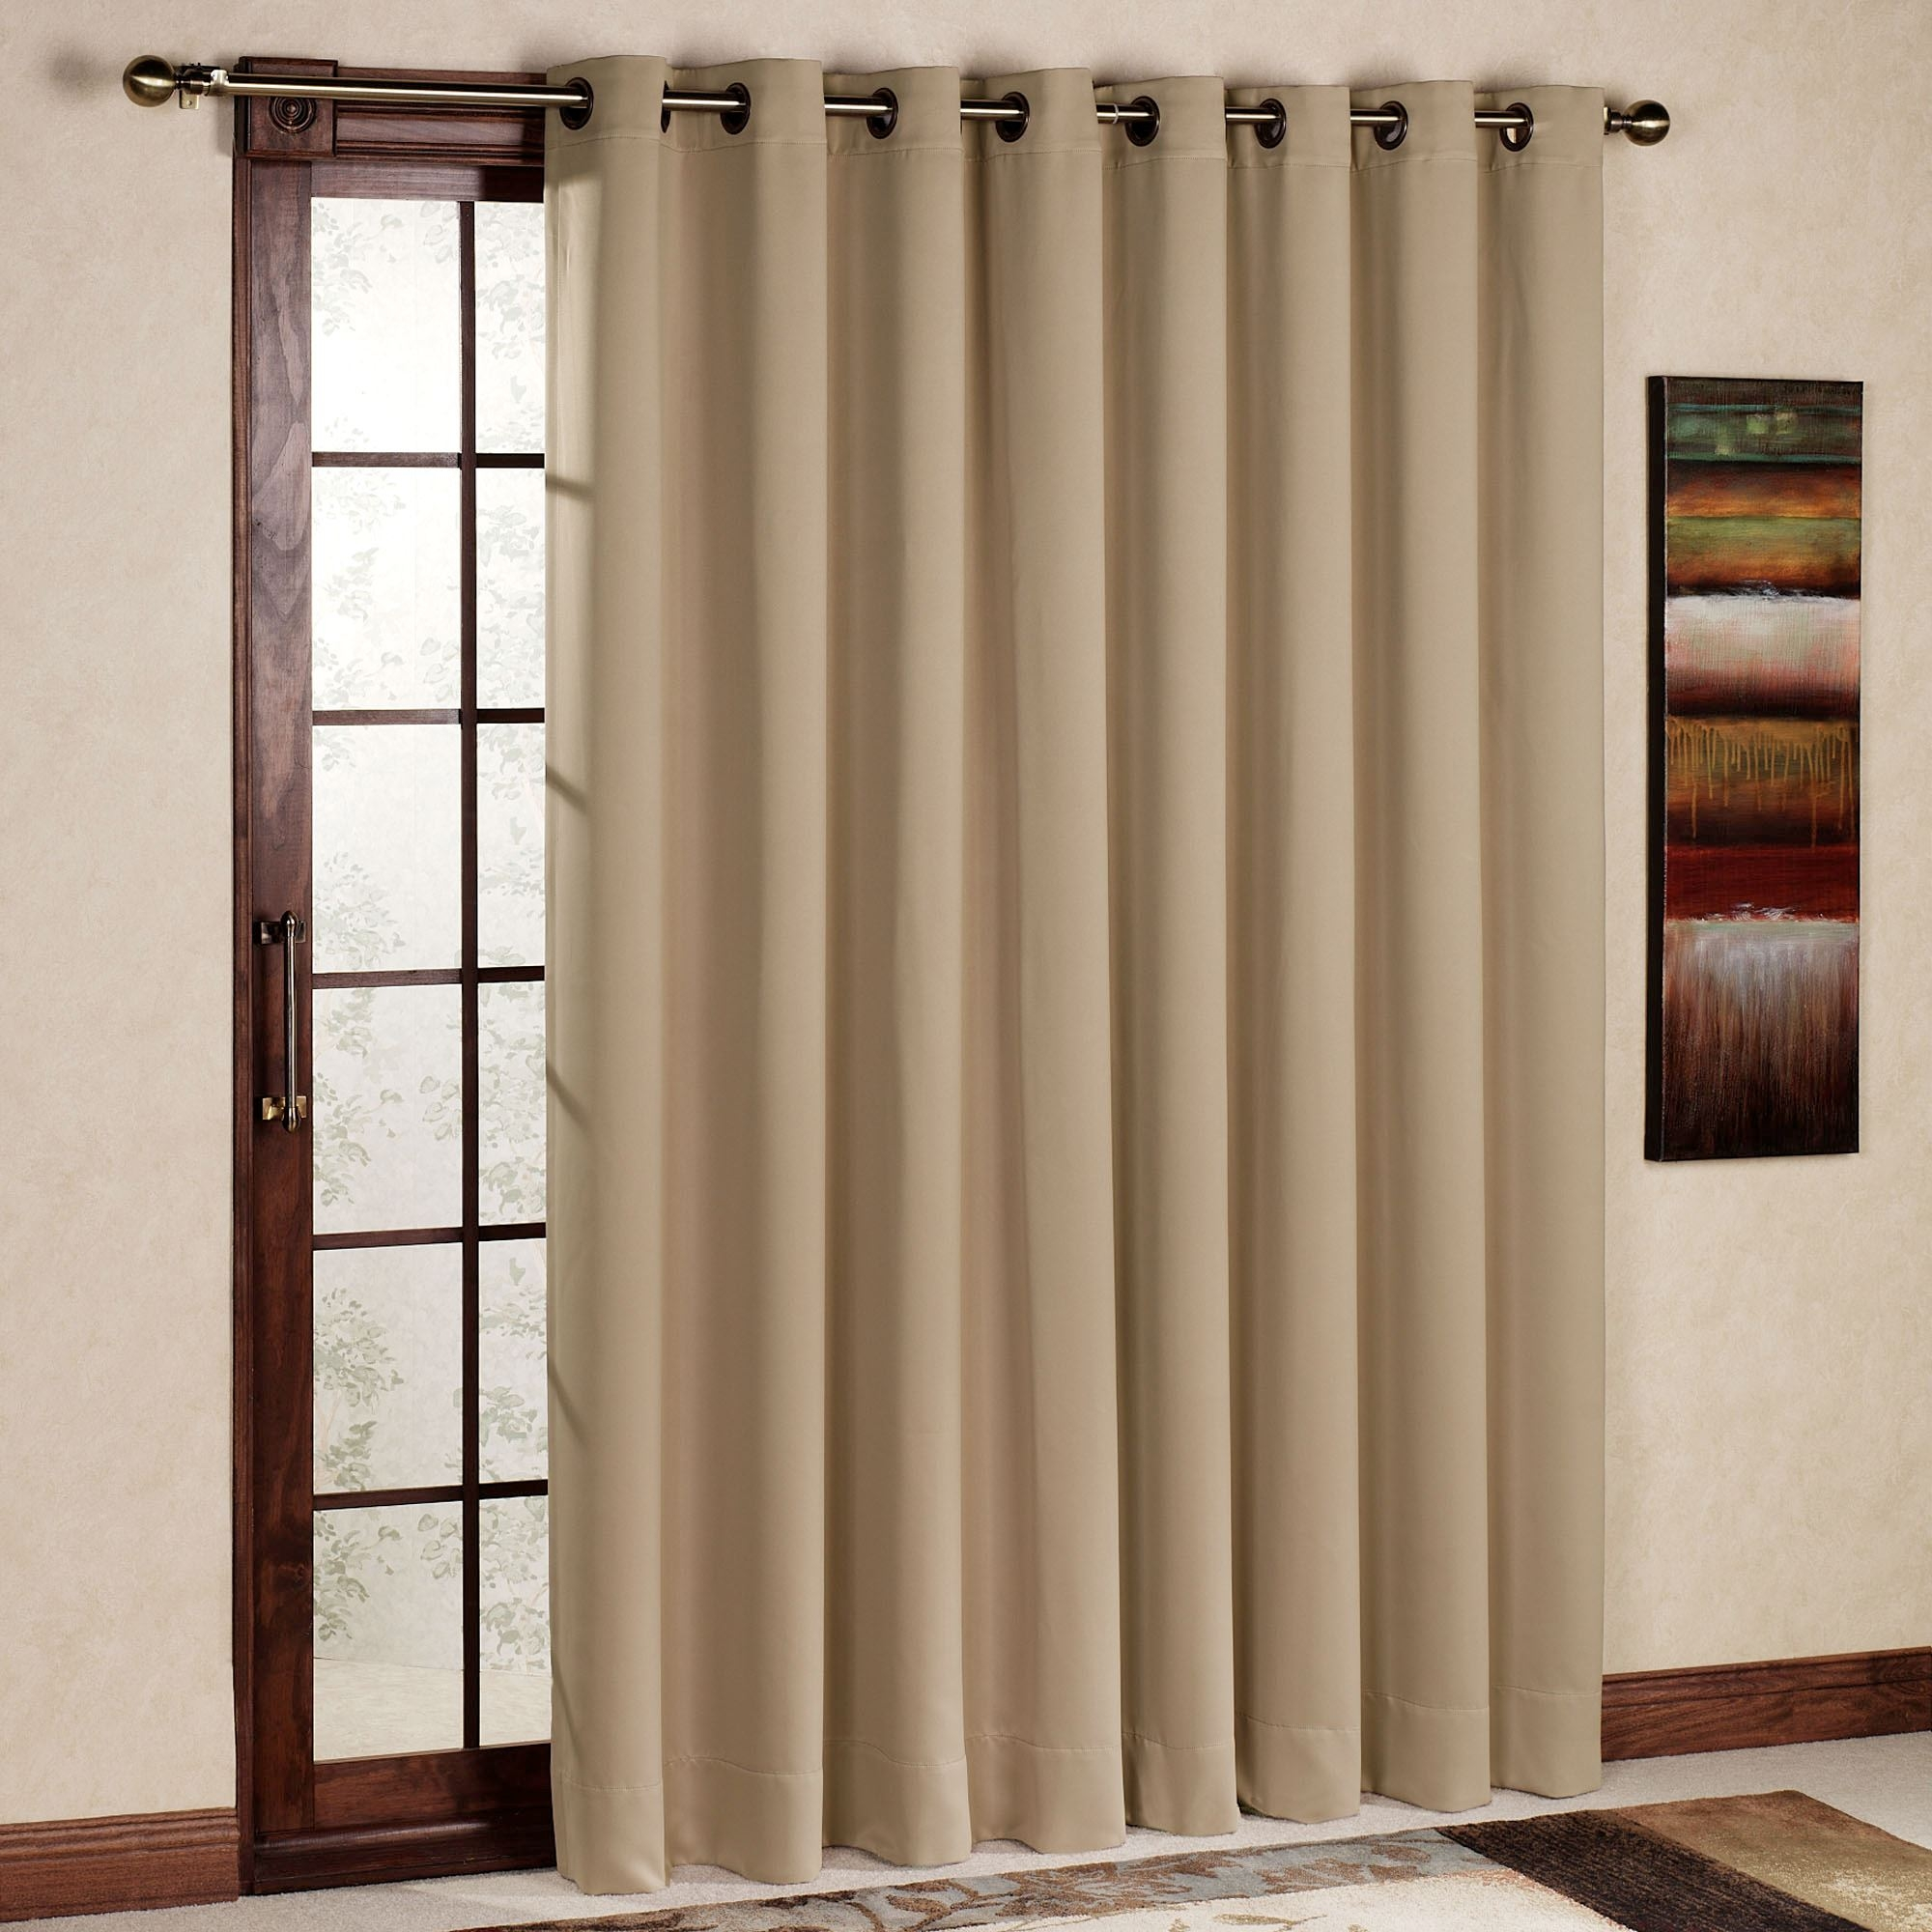 Blackout Curtains For Sliding Glass DoorsBlackout Curtains For Sliding Glass Doors